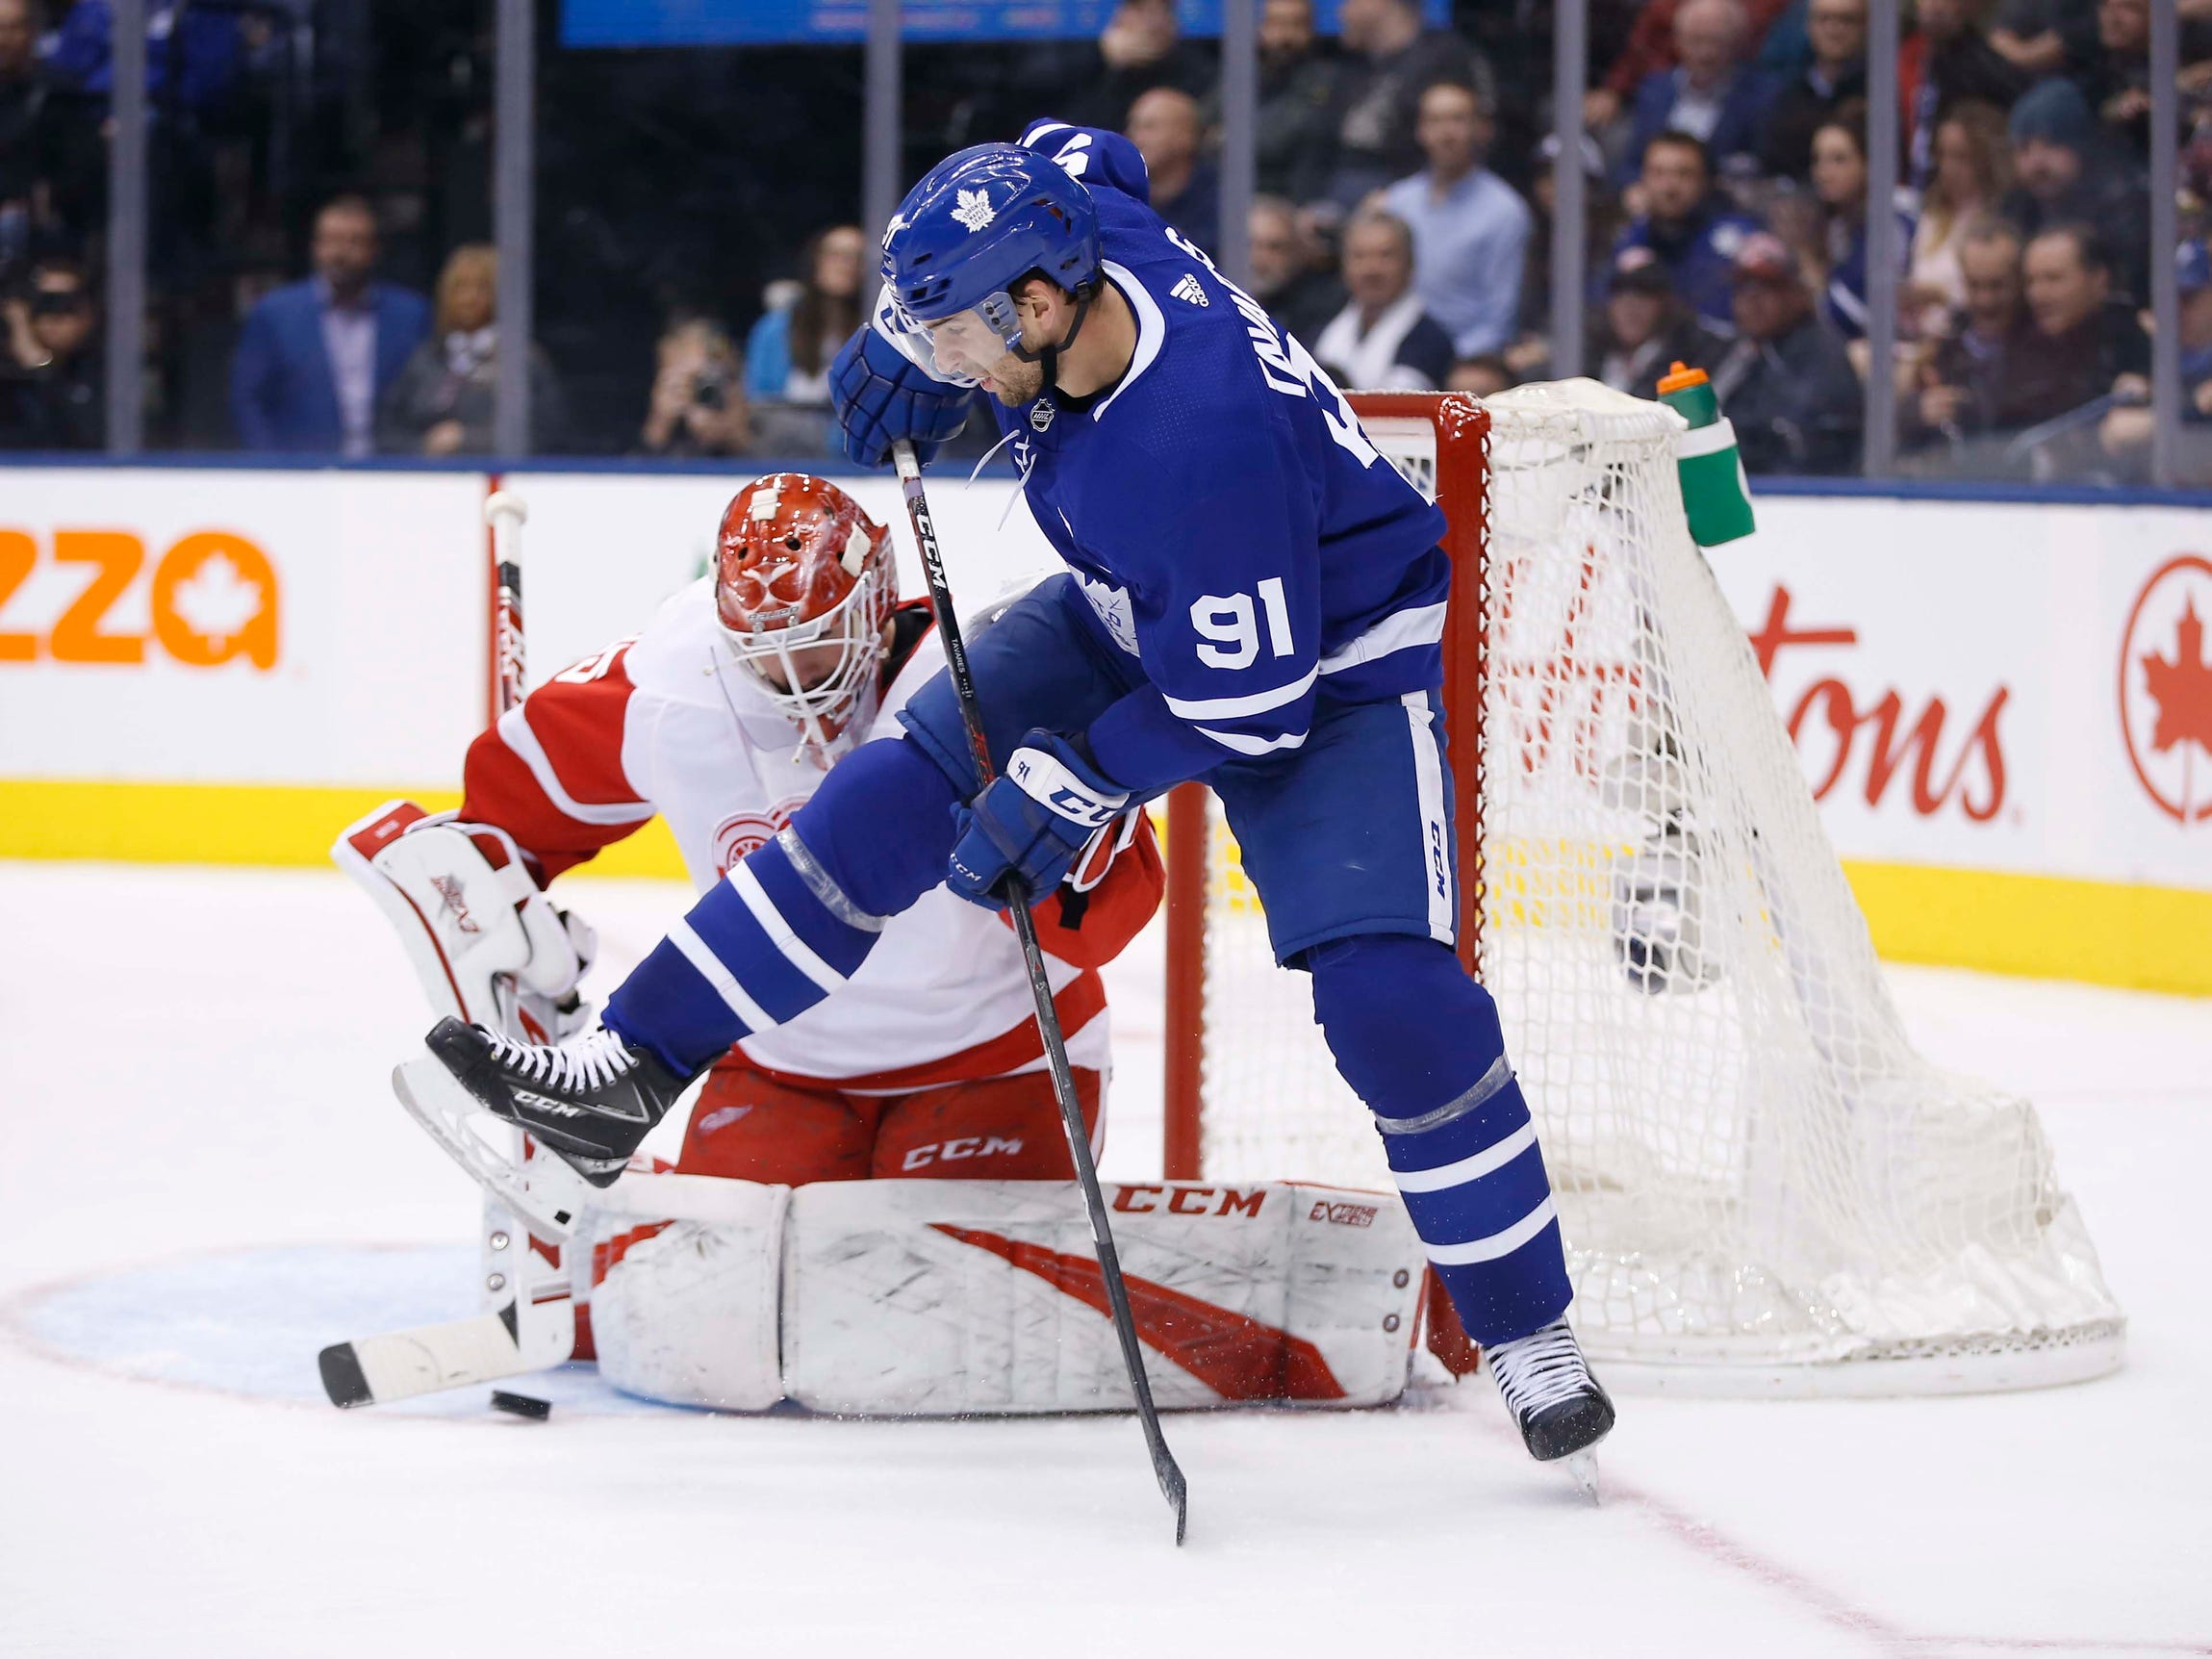 Toronto Maple Leafs forward John Tavares directs a puck on Detroit Red Wings goaltender Jonathan Bernier during the second period at Scotiabank Arena, Dec. 6, 2018 in Toronto, Ontario, Canada.